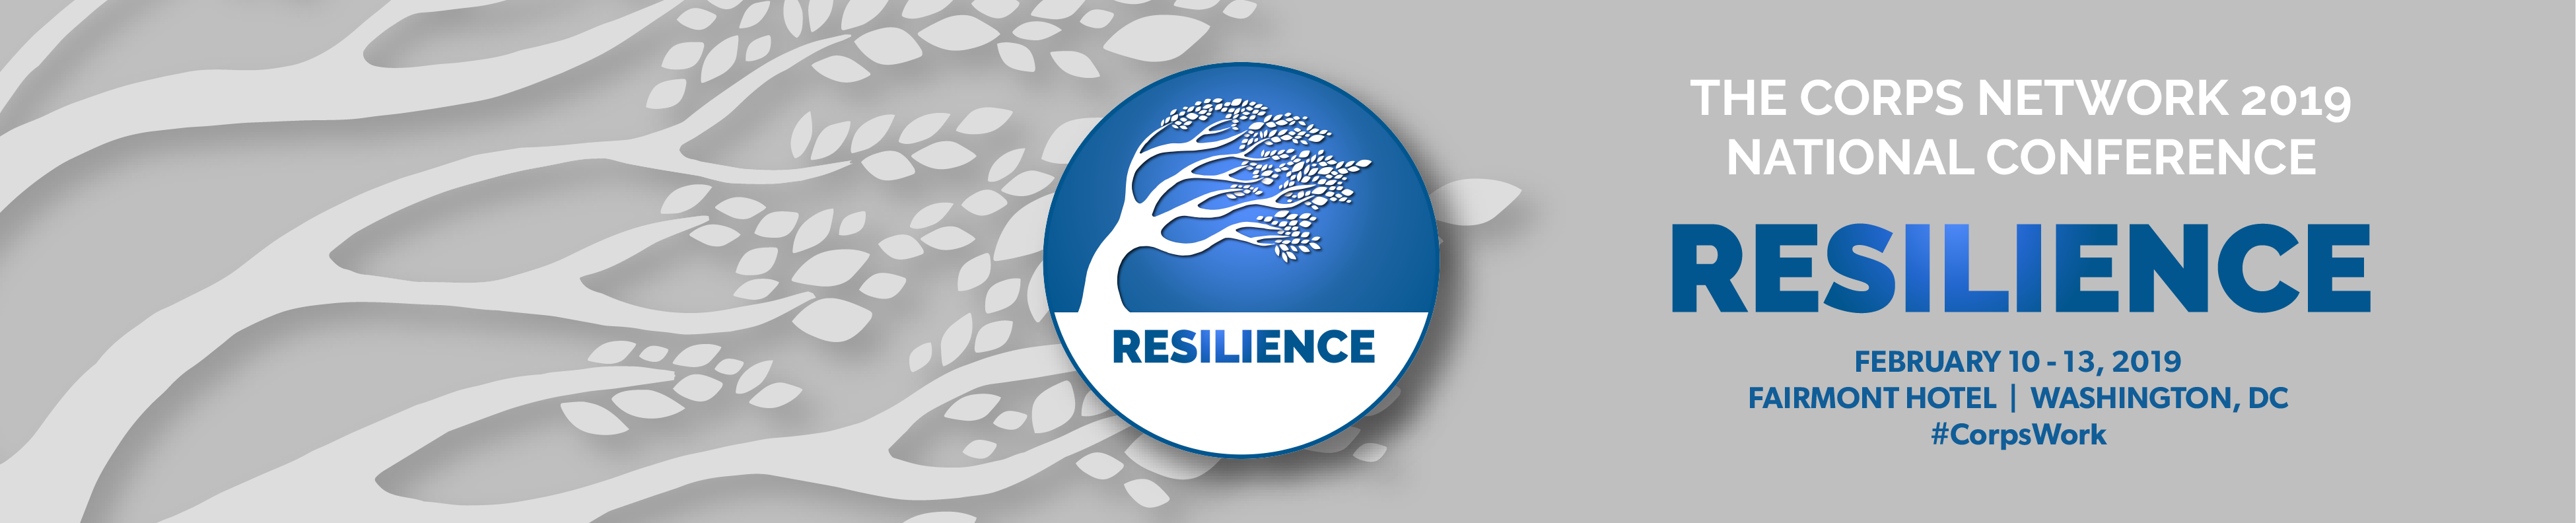 The Corps Network 2019 National Conference: Resilience